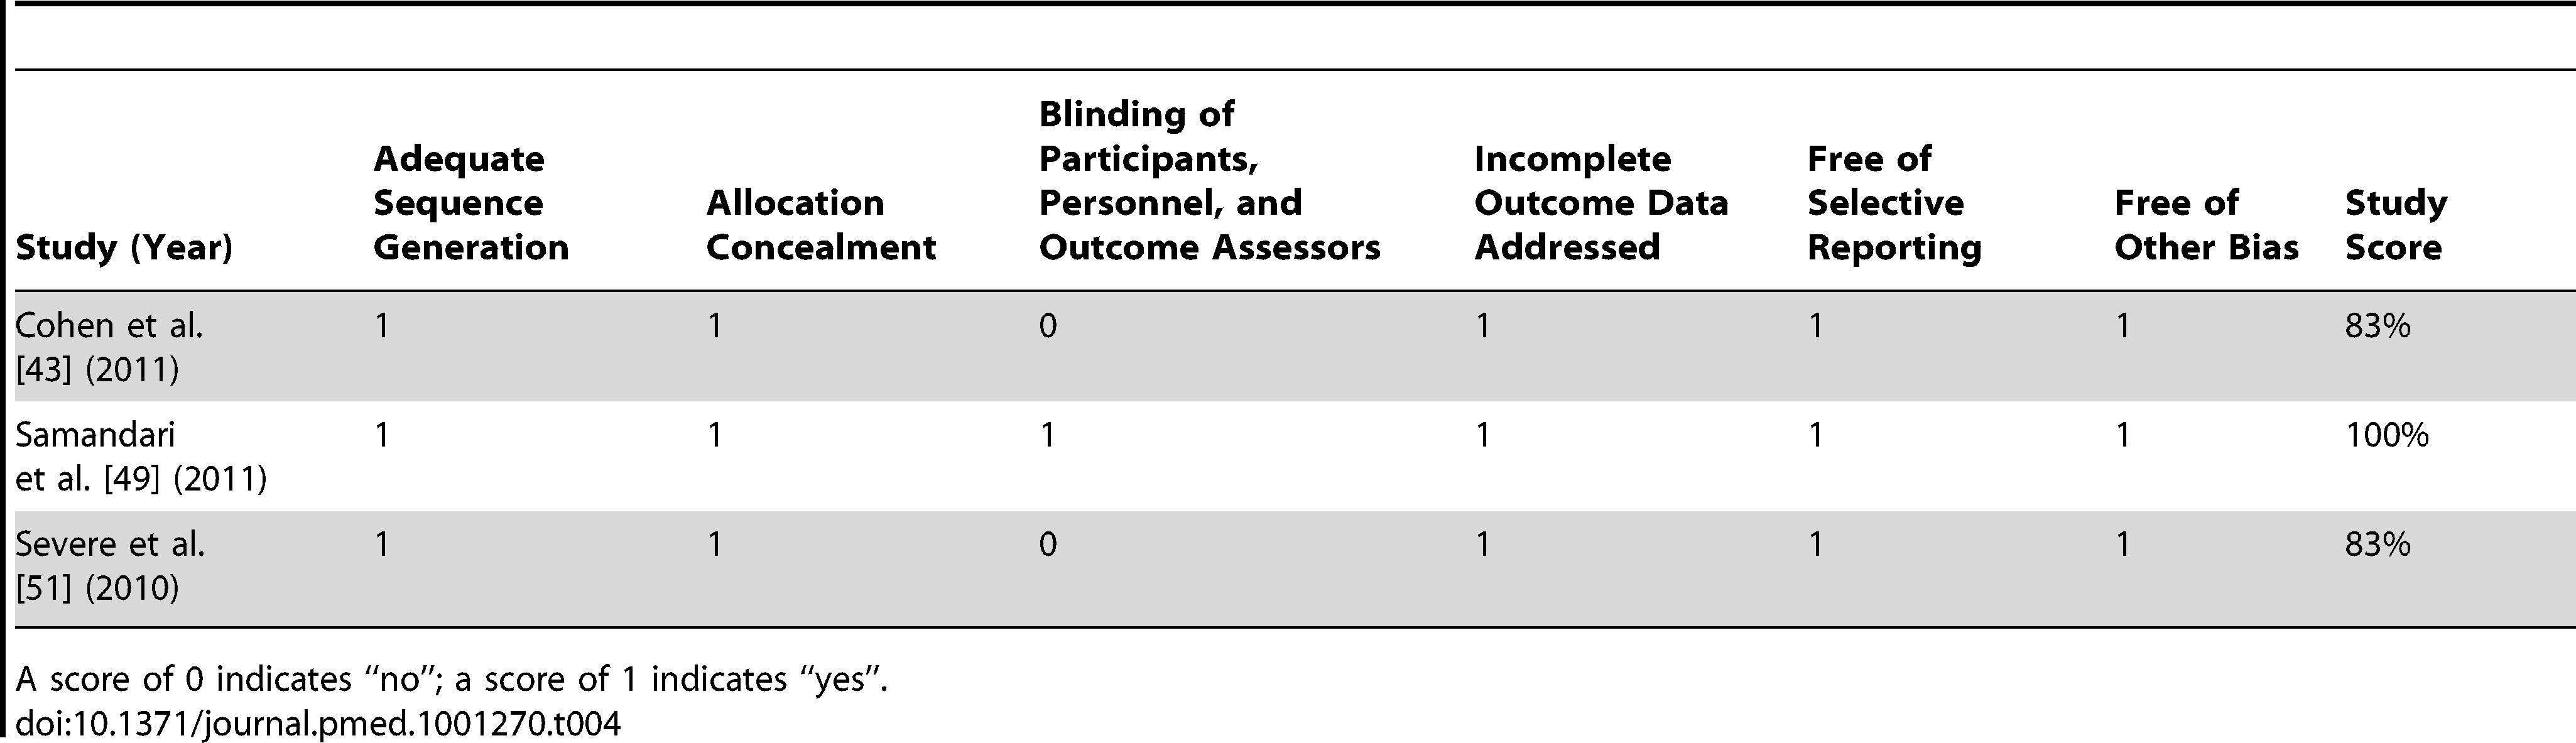 Bias assessment for randomised controlled trials meeting inclusion criteria.